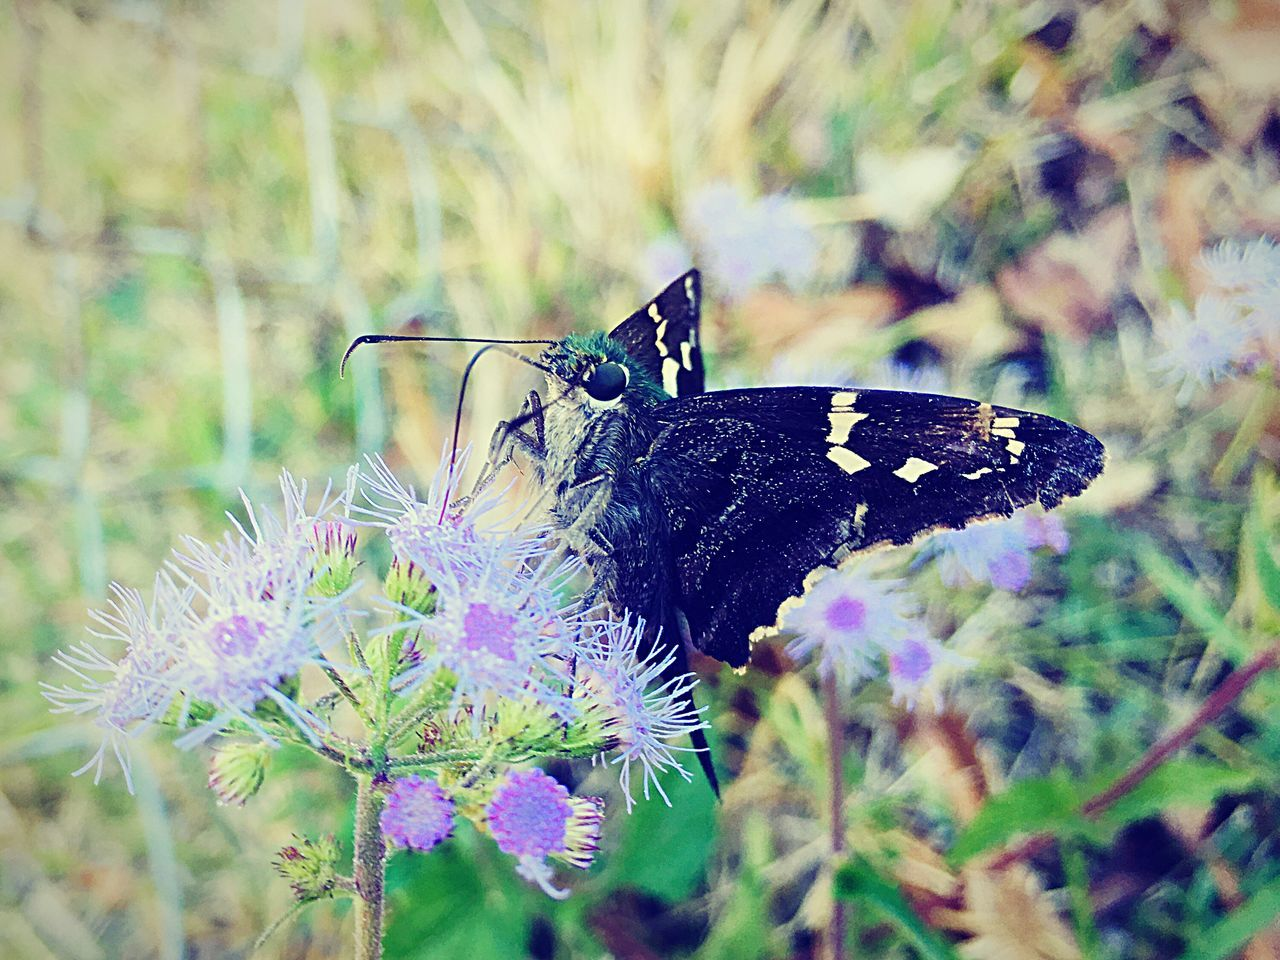 One Animal Animal Themes Insect Animals In The Wild Butterfly - Insect Nature Plant Focus On Foreground Close-up Flower Fragility Beauty In Nature No People Outdoors Day Animal Wildlife Butterfly Freshness Pollination